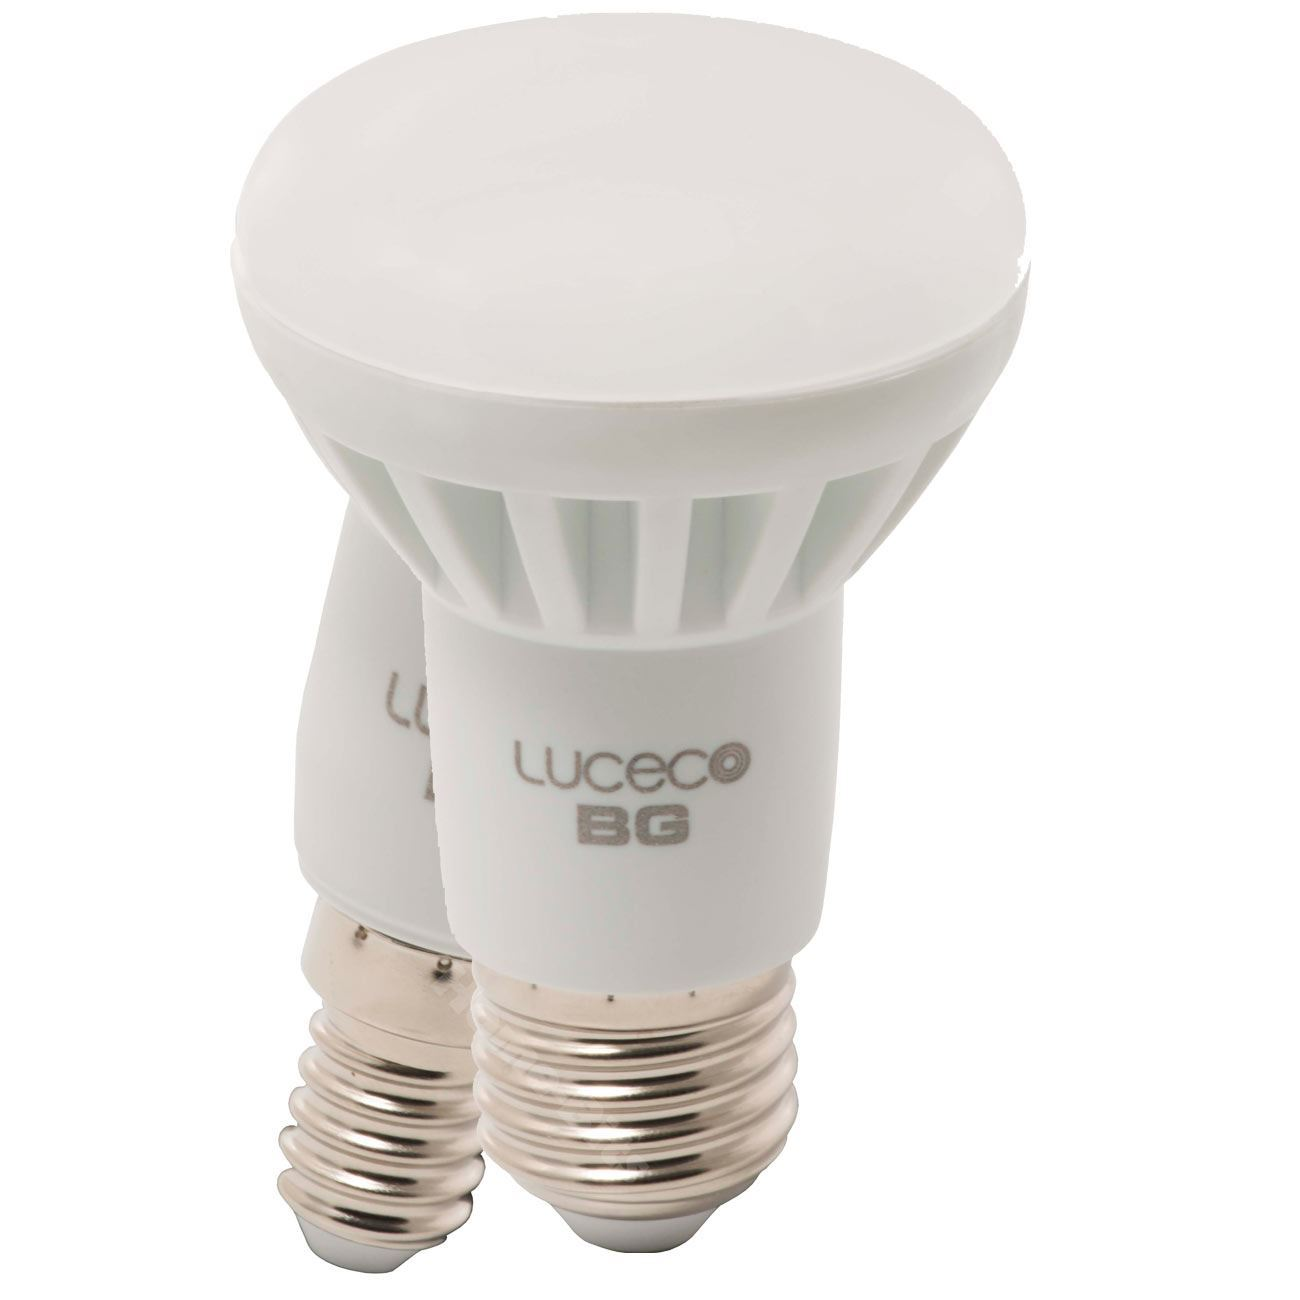 Get Free Energy Saving Light Bulbs